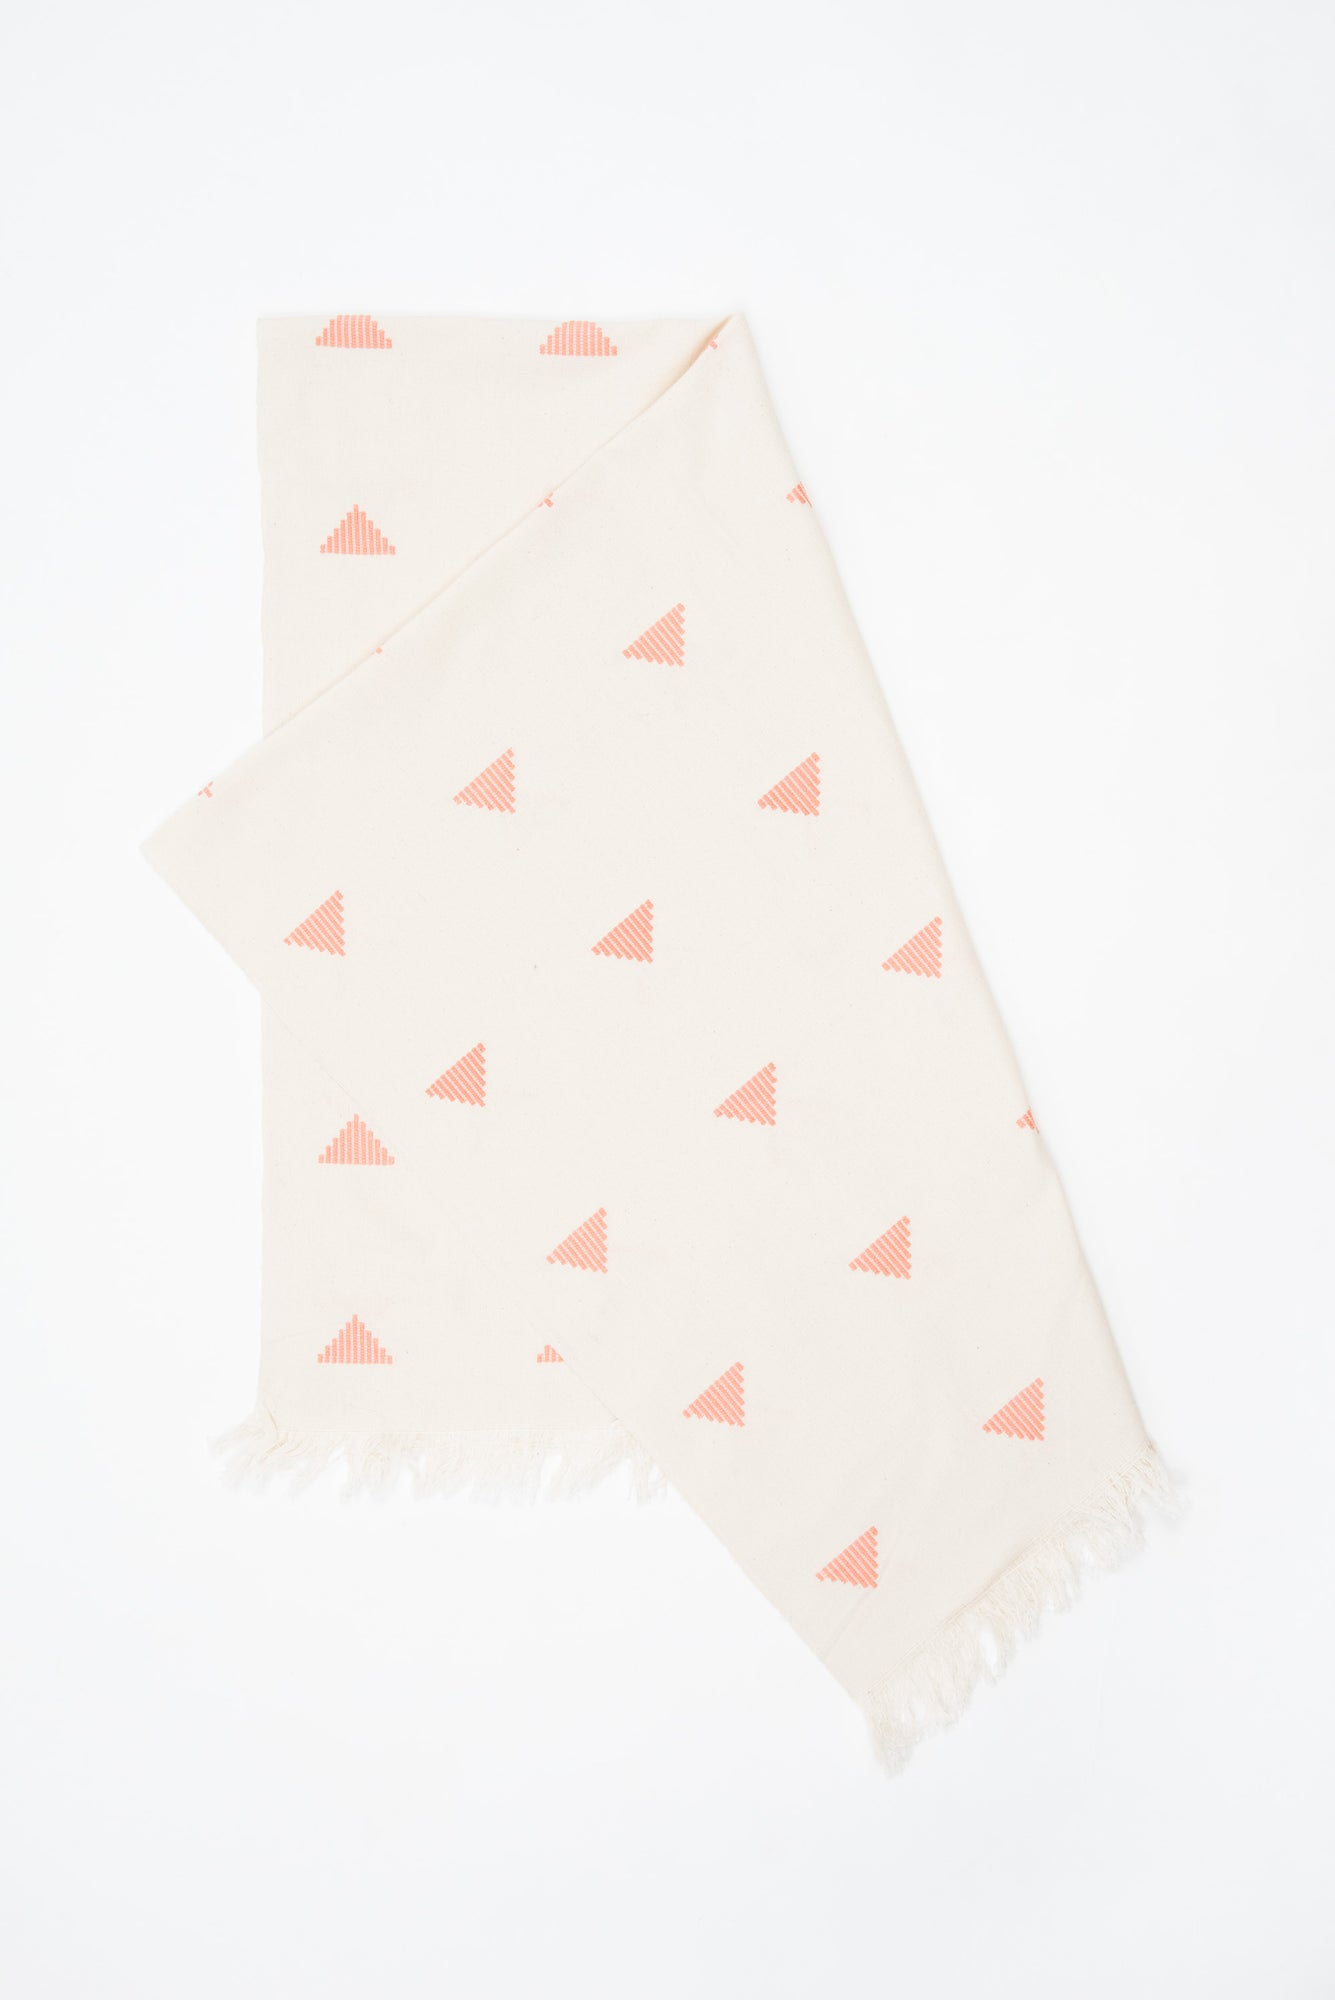 Big Sur Pink Triangle Blanket